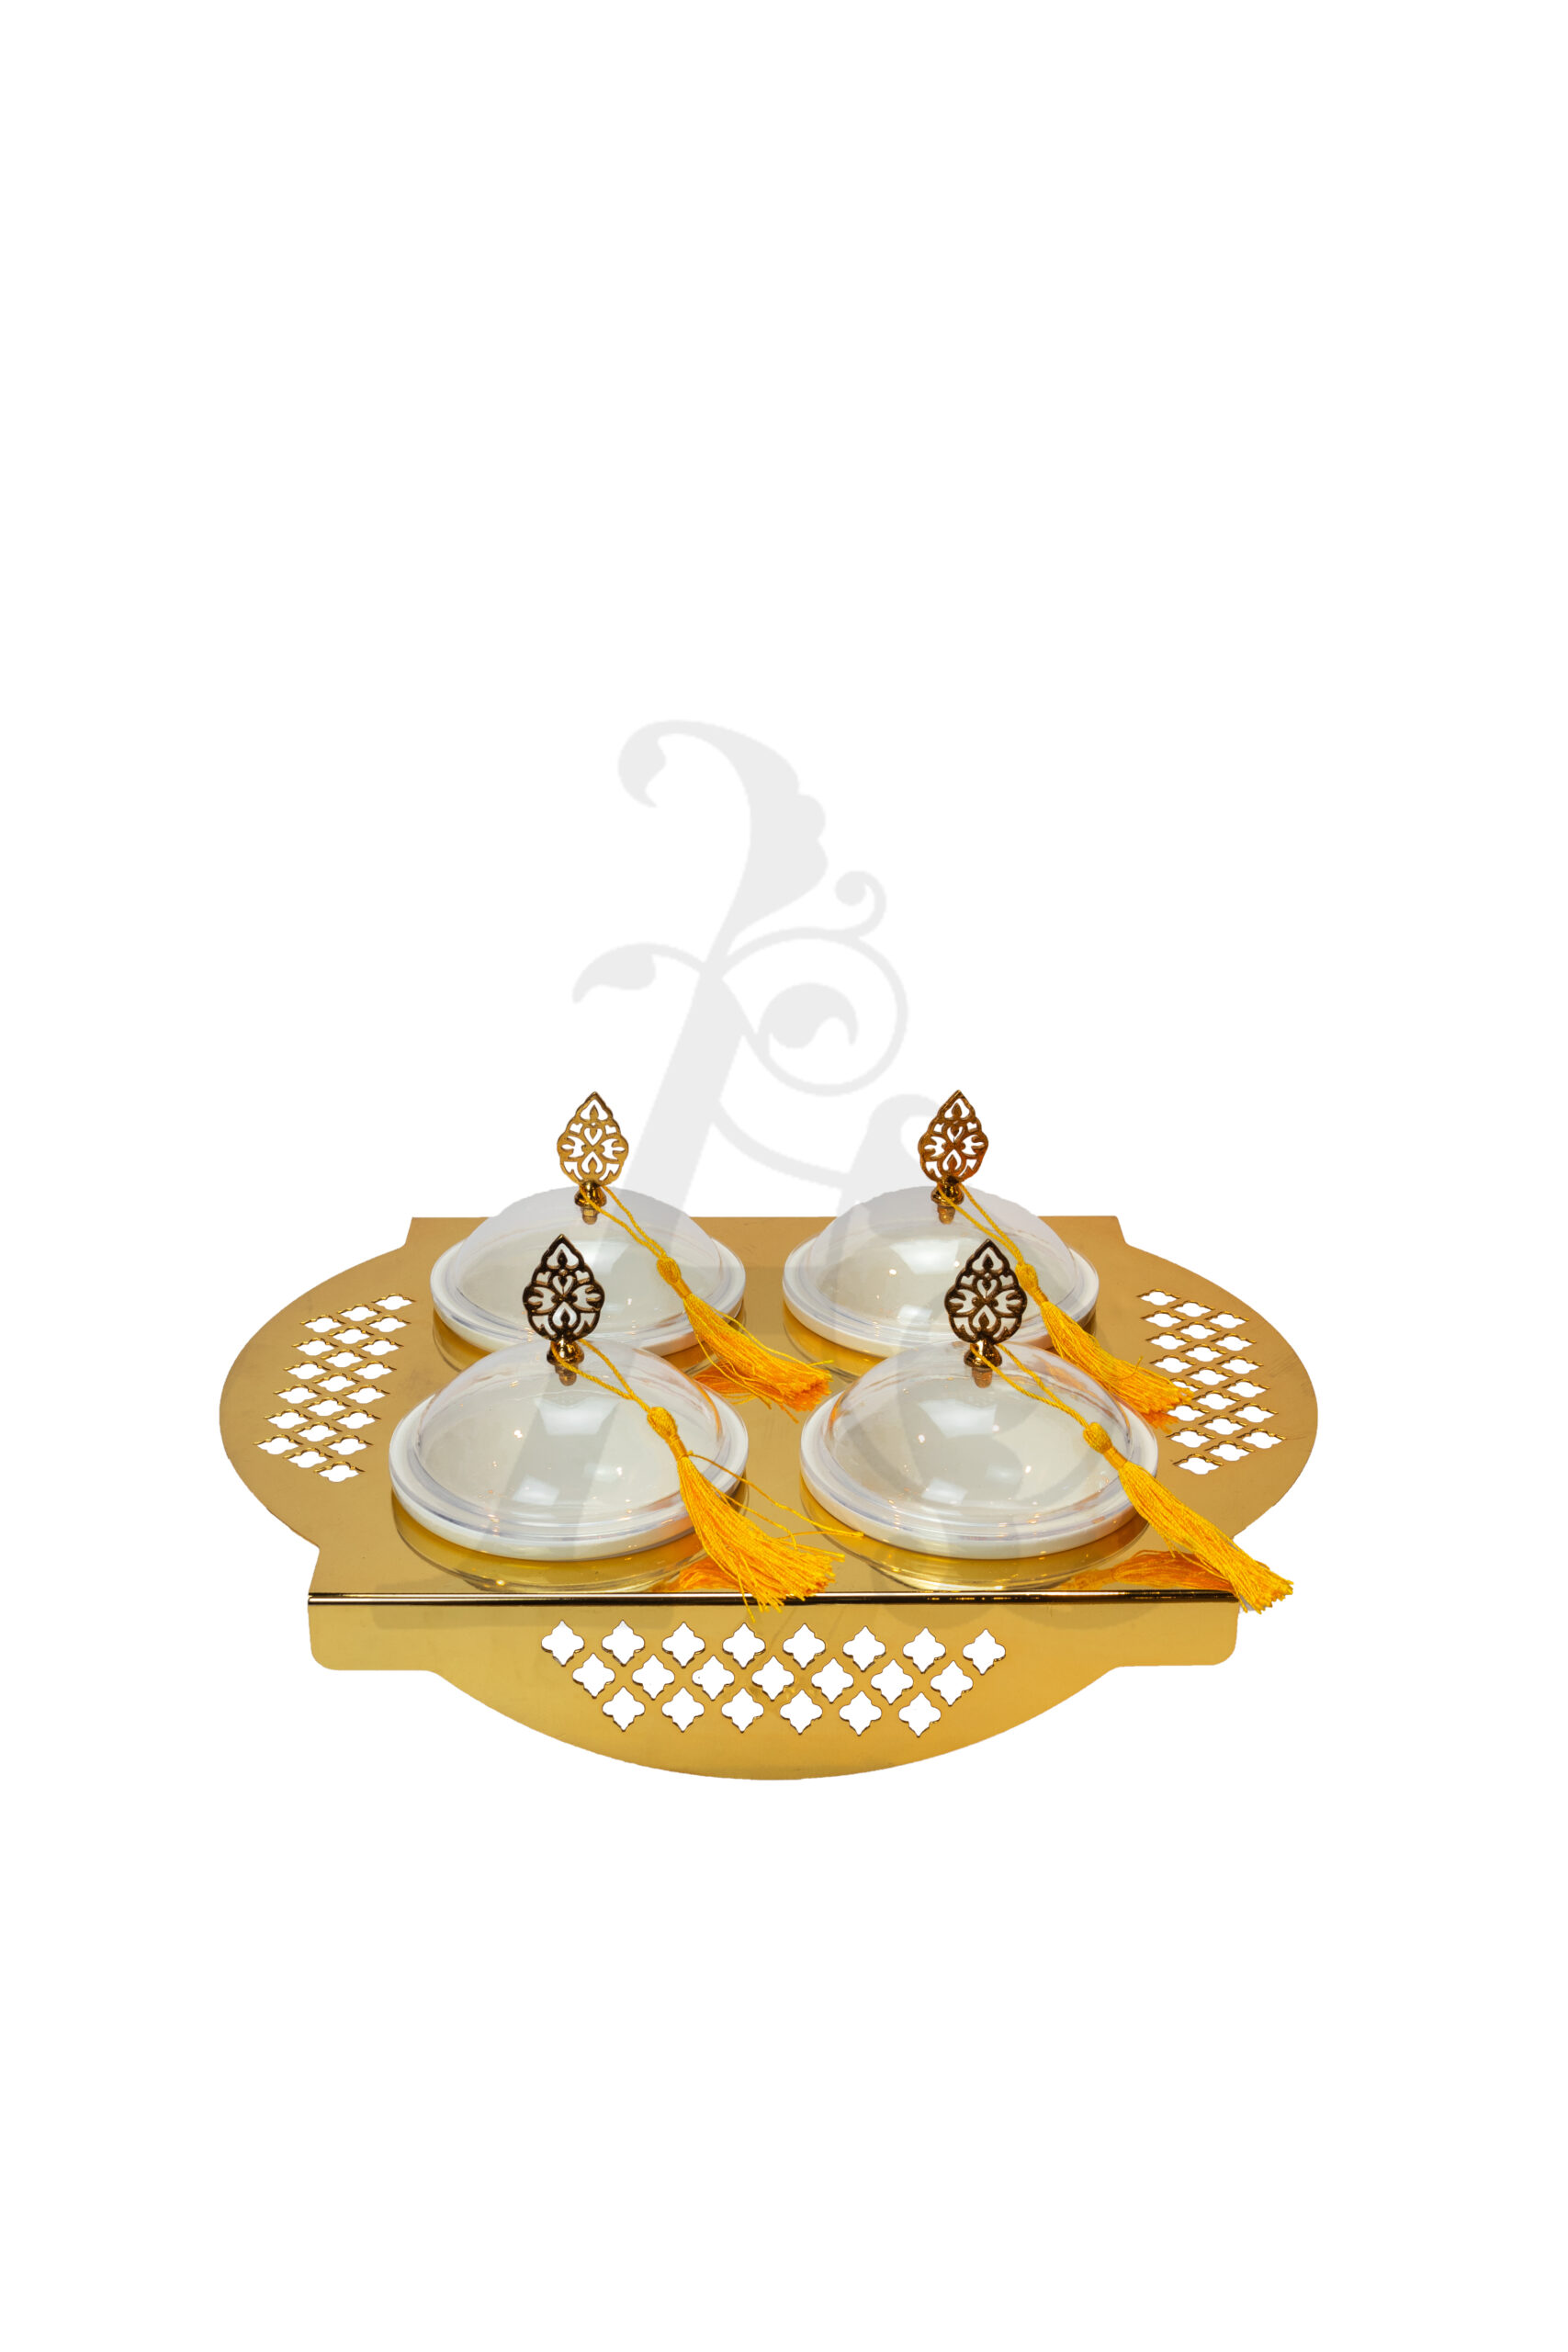 Buy Delight Servers 4 Pieces Round Base Gold and White 40.3x30